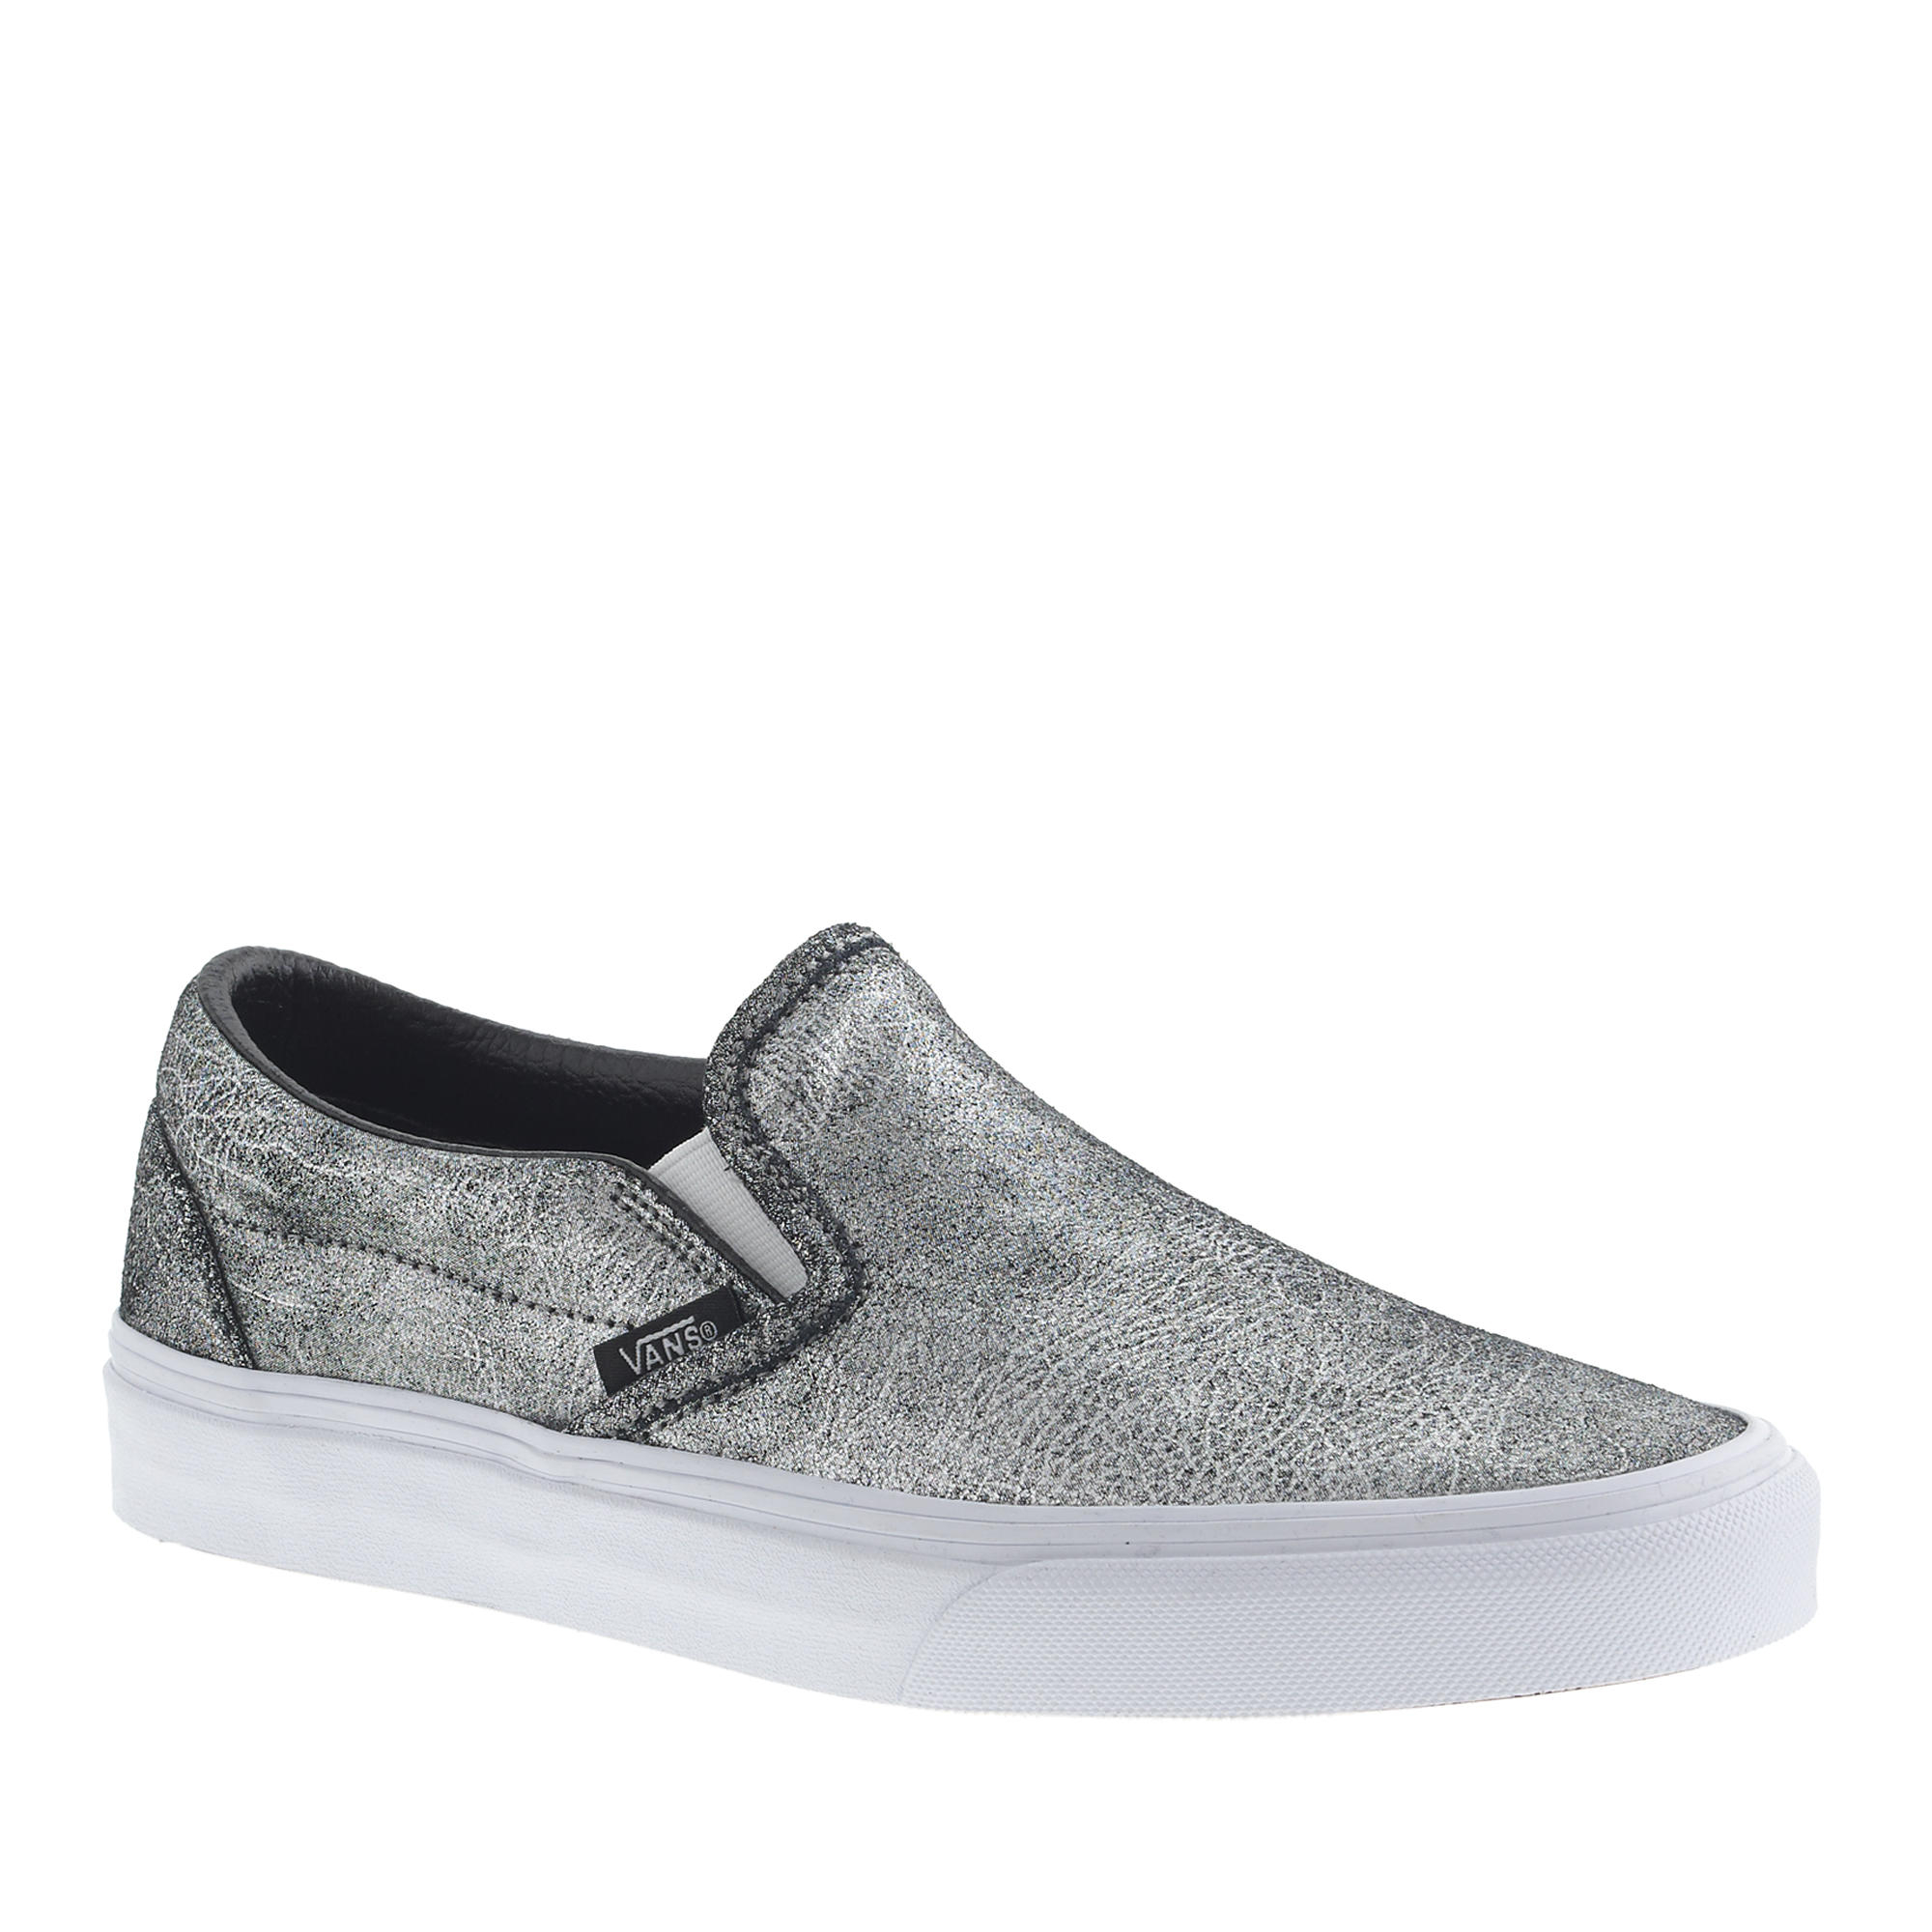 unisex vans classic slip on sneakers in metallic silver leather lyst. Black Bedroom Furniture Sets. Home Design Ideas